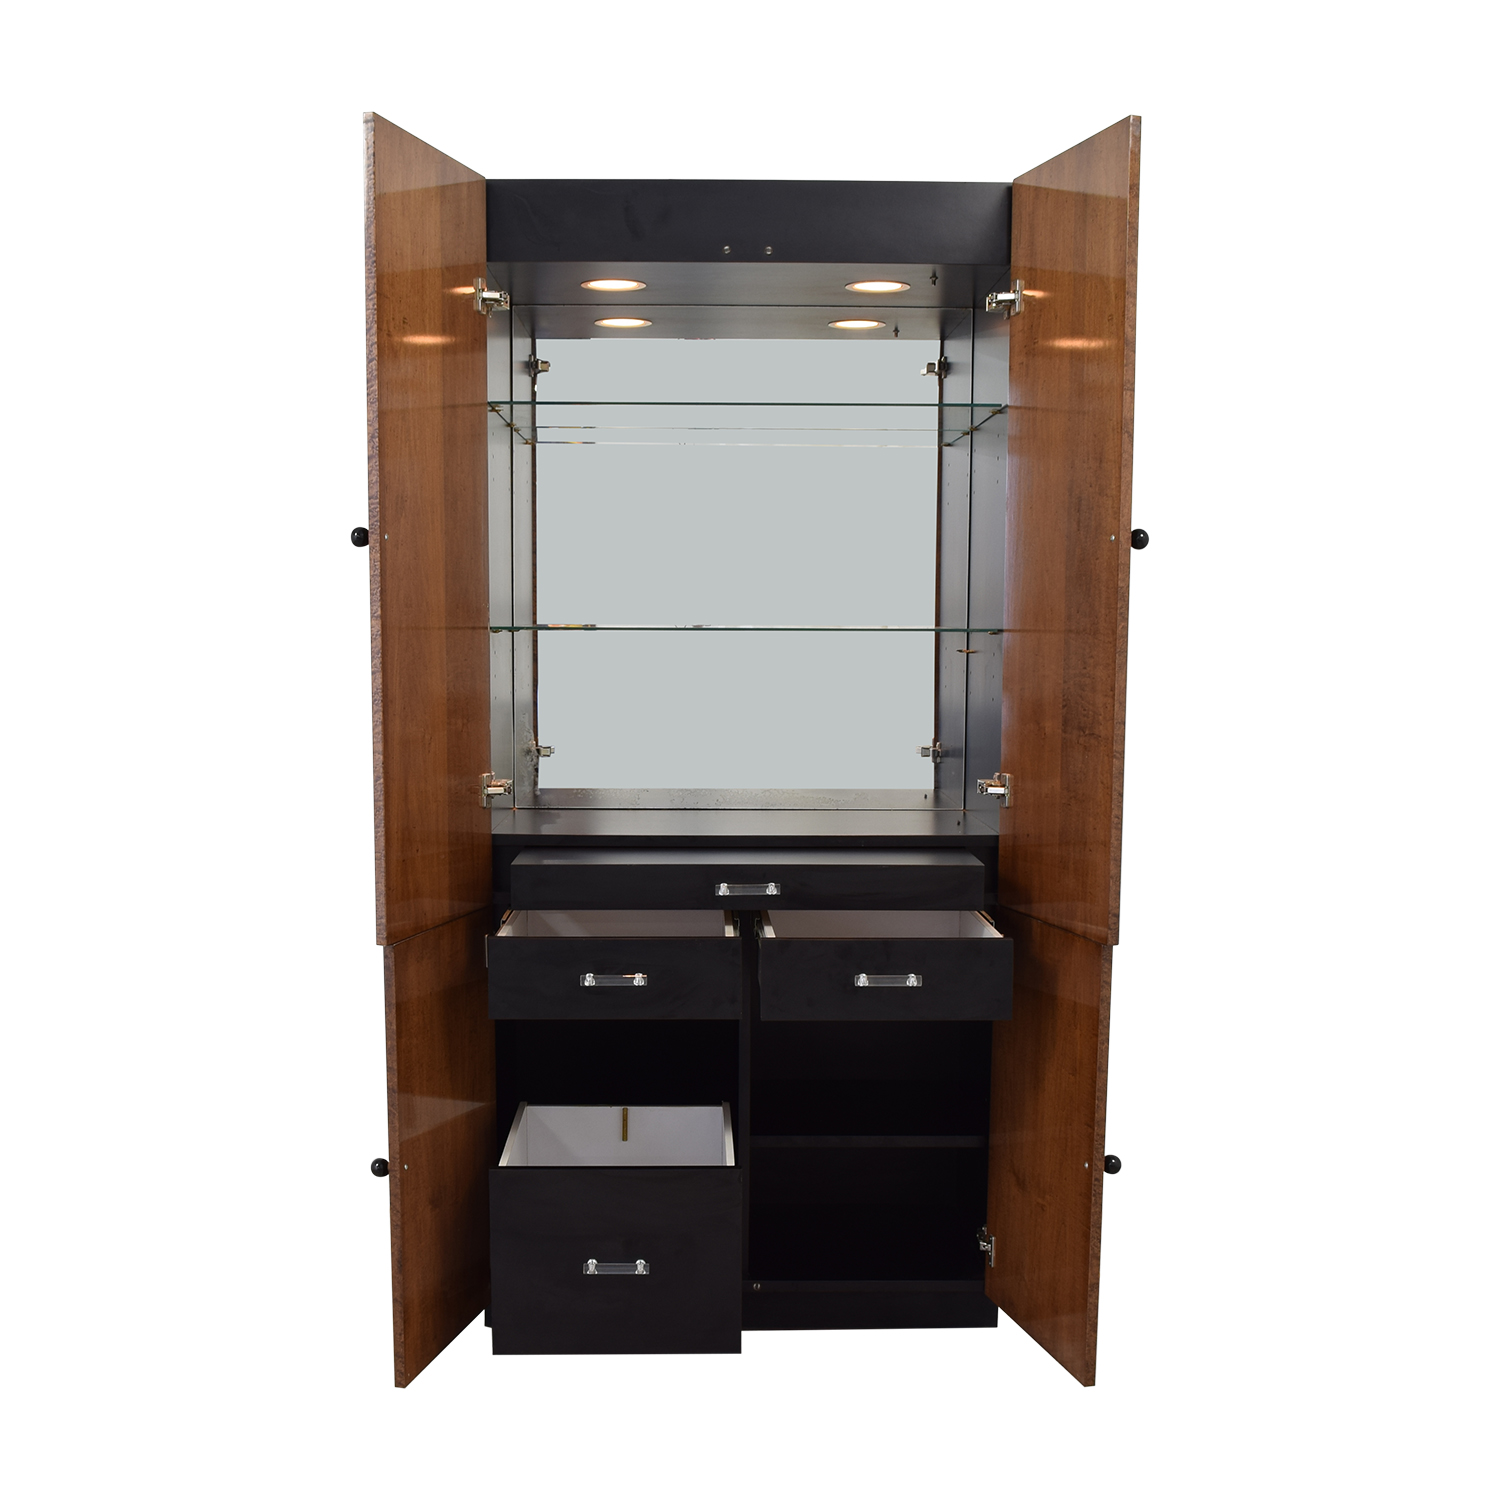 Manhattan Cabinetry Manhattan Cabinetry Tall Bar Cabinet on sale